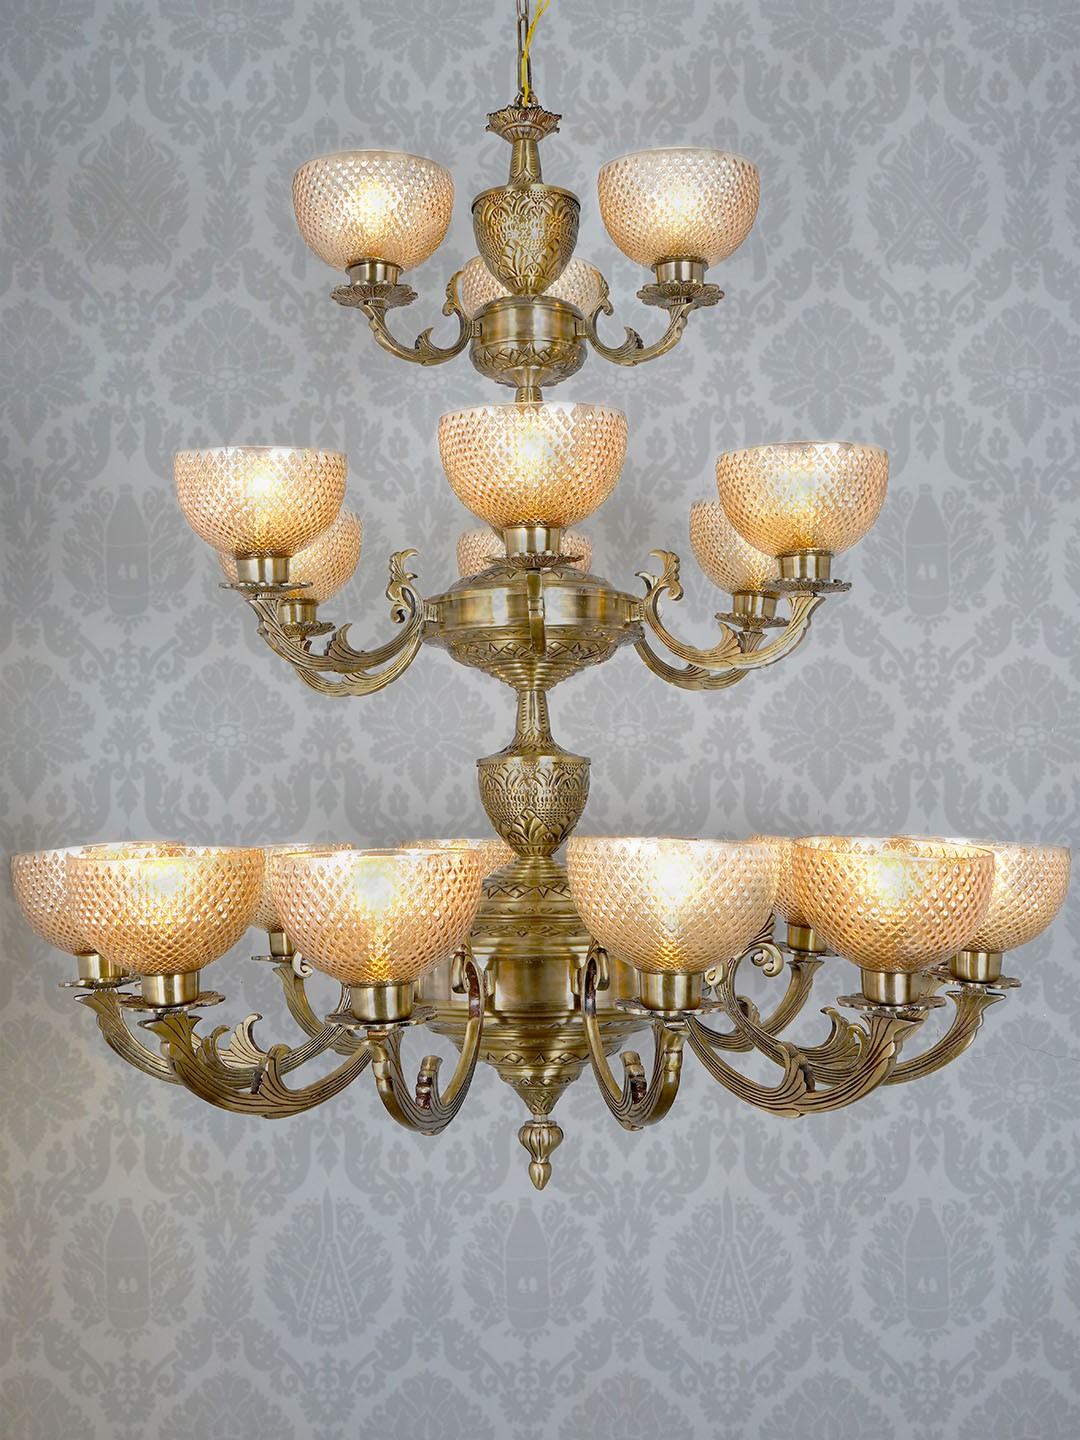 Traditional Meena Aluminium 21 Lights 3 Step Chandelier in Antique Brass Finish and Golden Cut Glass Textured Glass Shade for Foyer, Entrance, Hotels